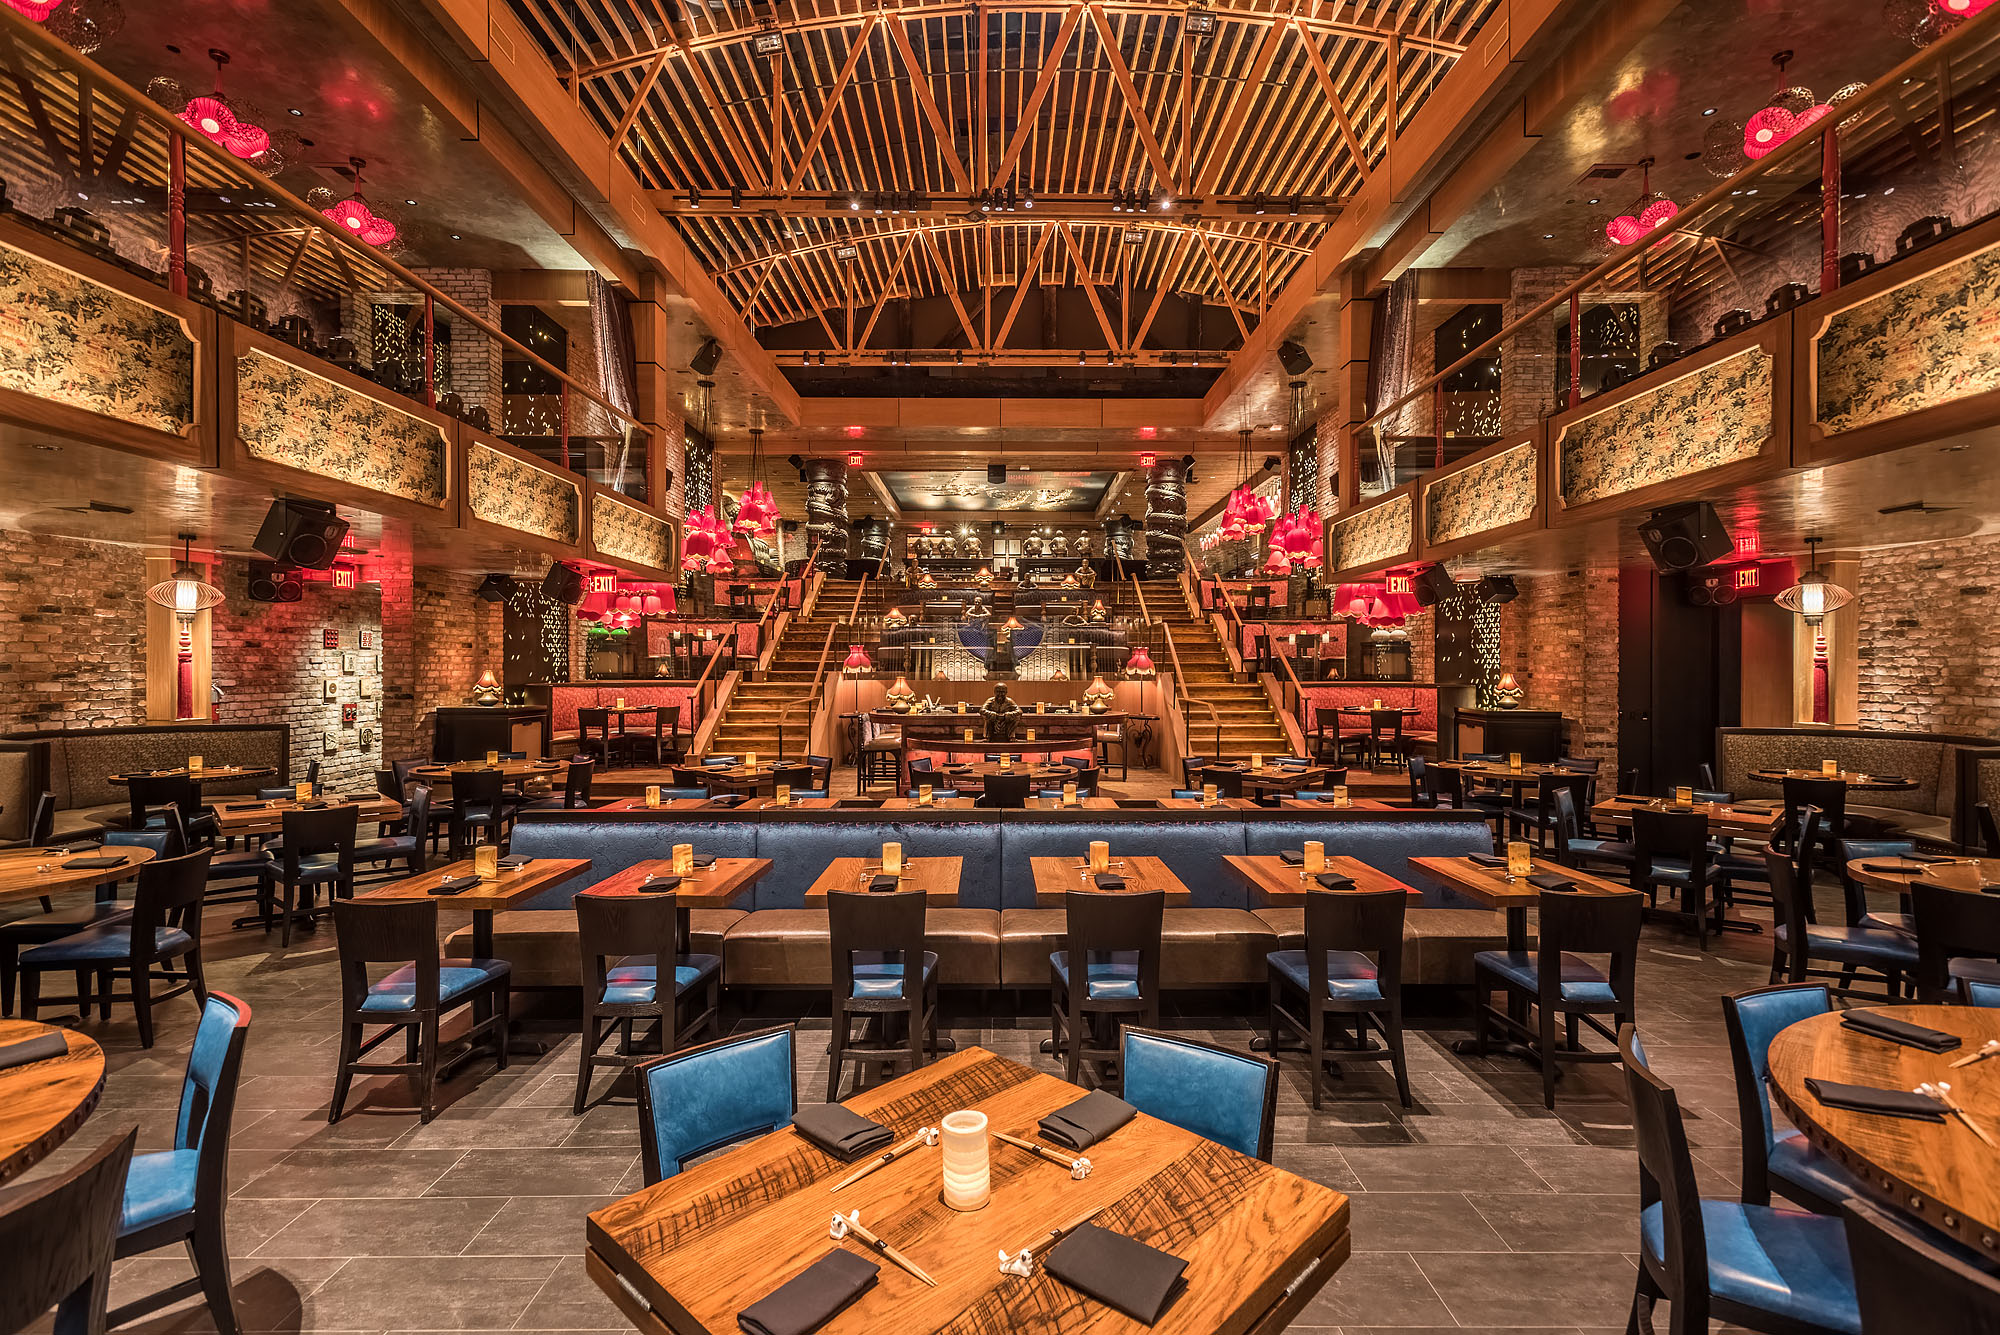 Exclusive Americas Busiest Restaurant TAO Opens in